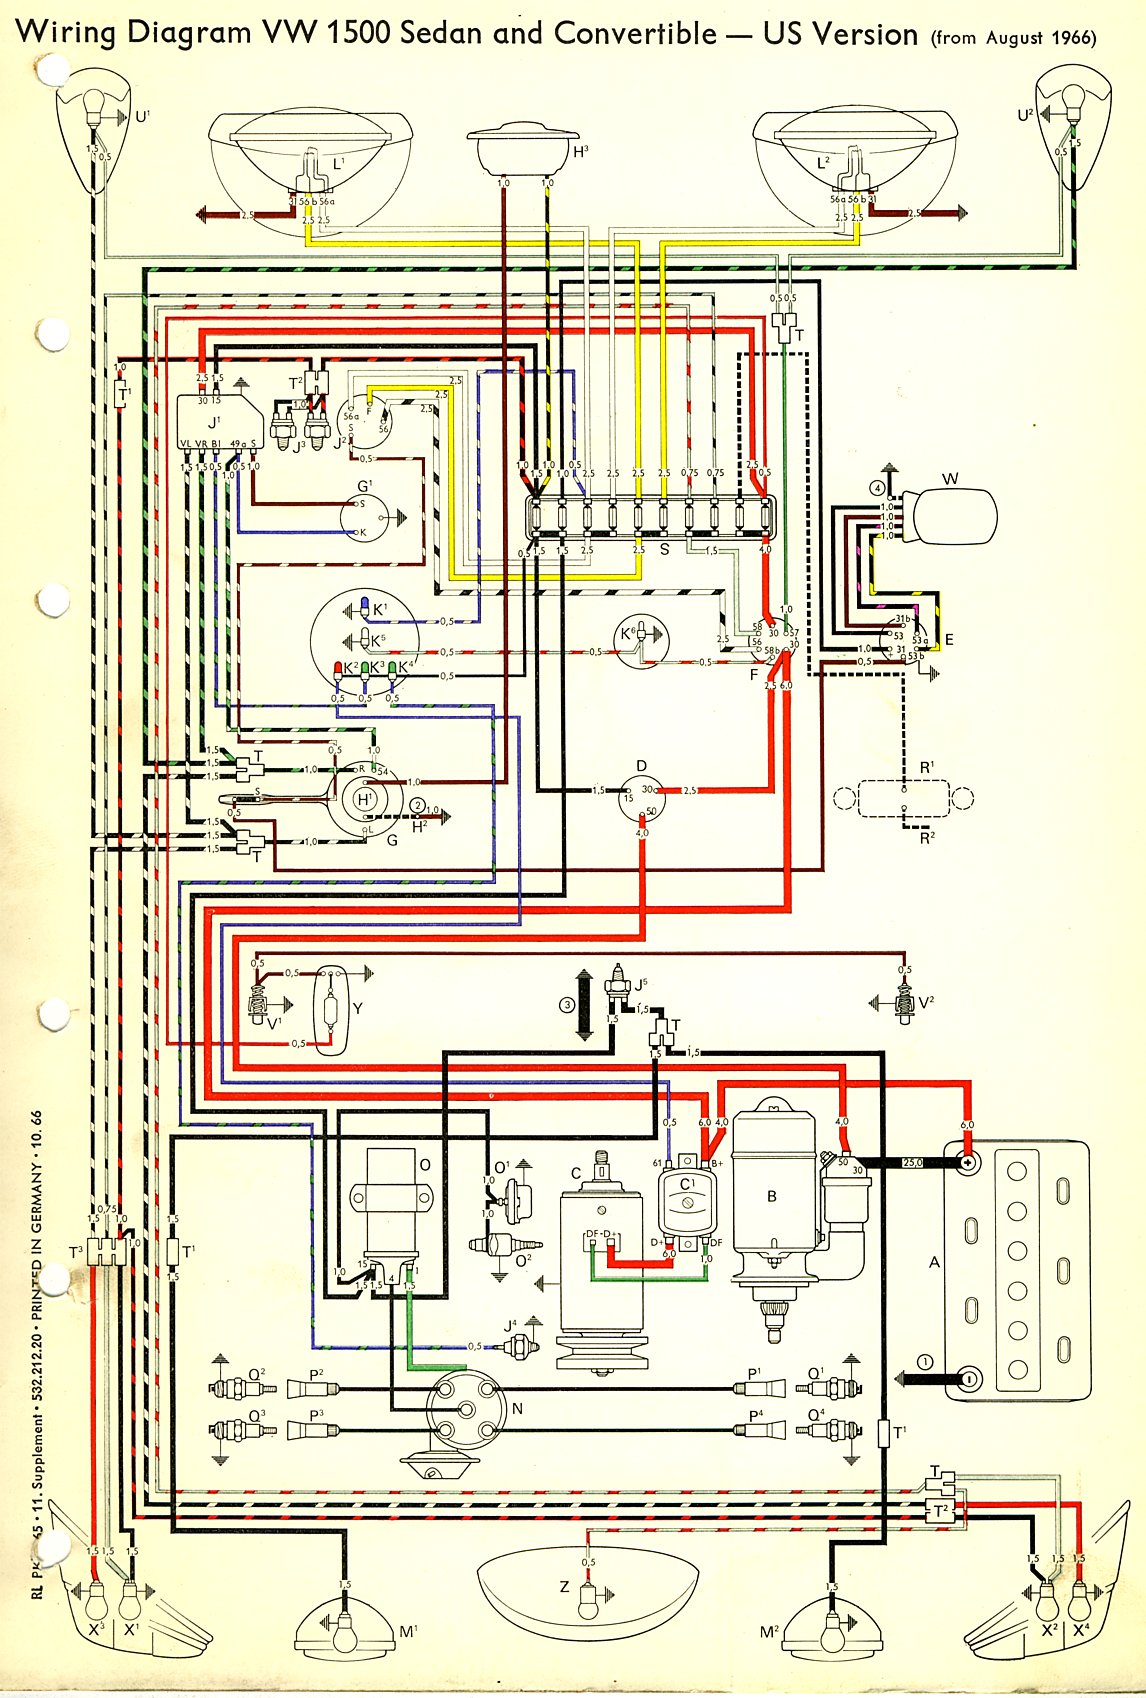 bug_67_USA wiring diagram 1974 vw super beetle readingrat net 74 vw bus wiring diagram at nearapp.co